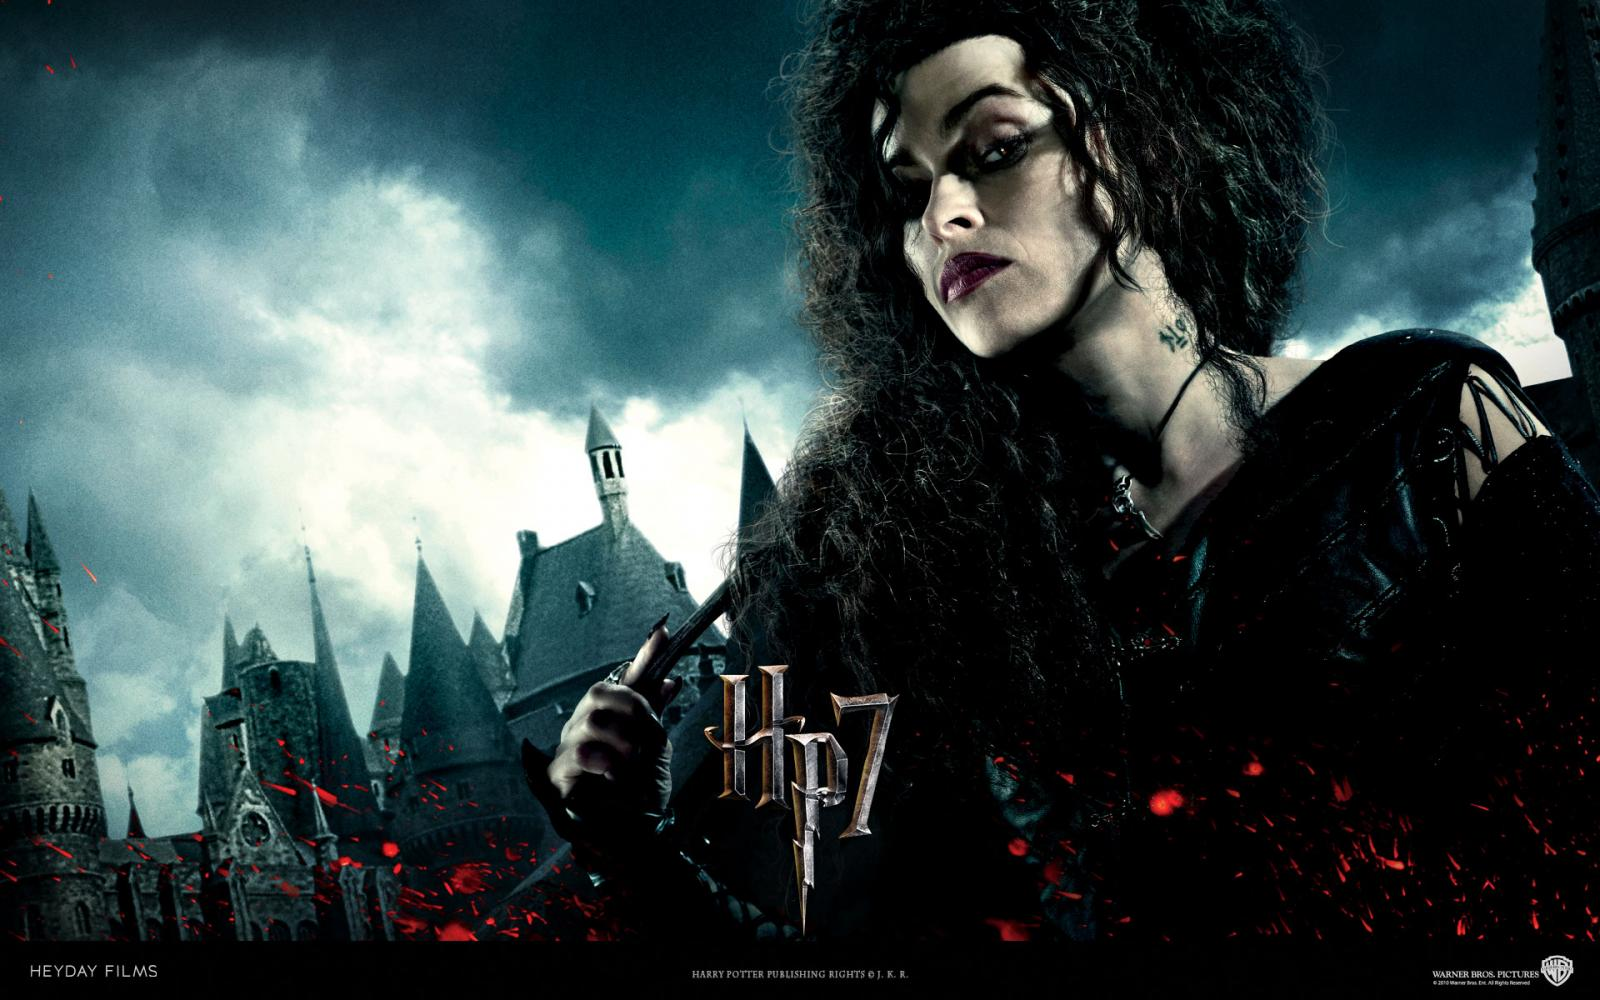 Wallpaper Harry Potter bellatrix